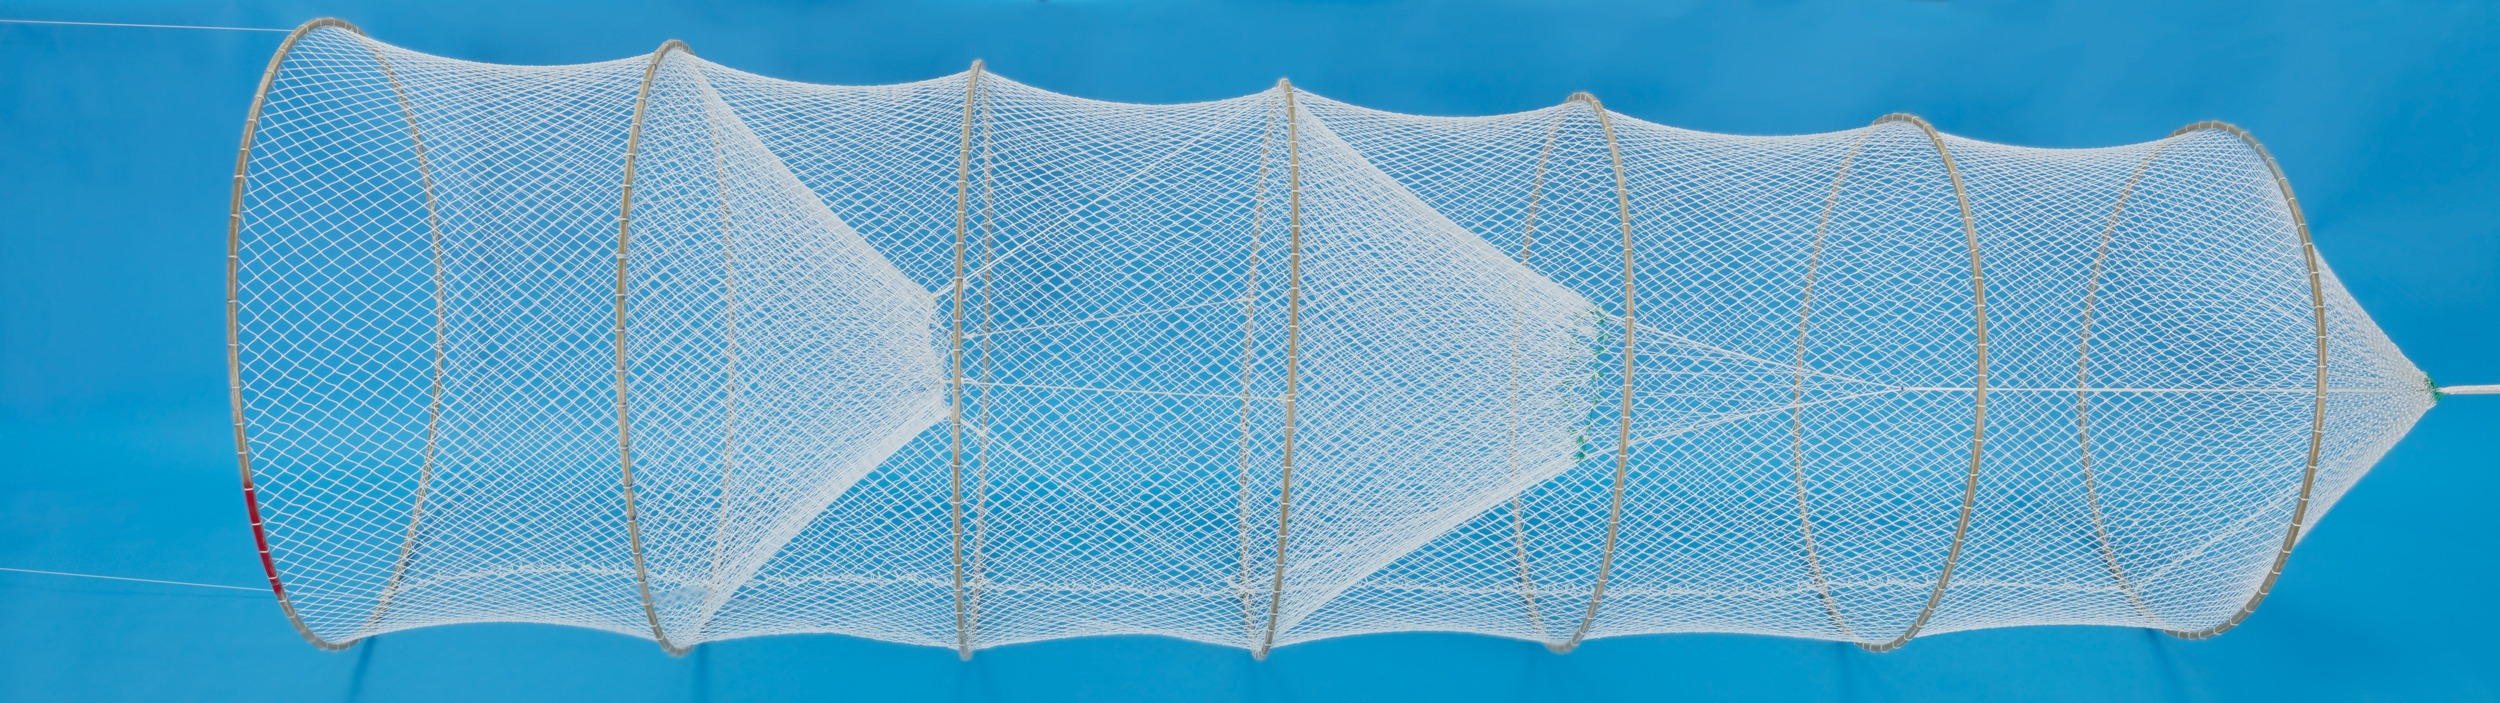 Hoop nets fish netting duluth fish nets an h for Fish net company